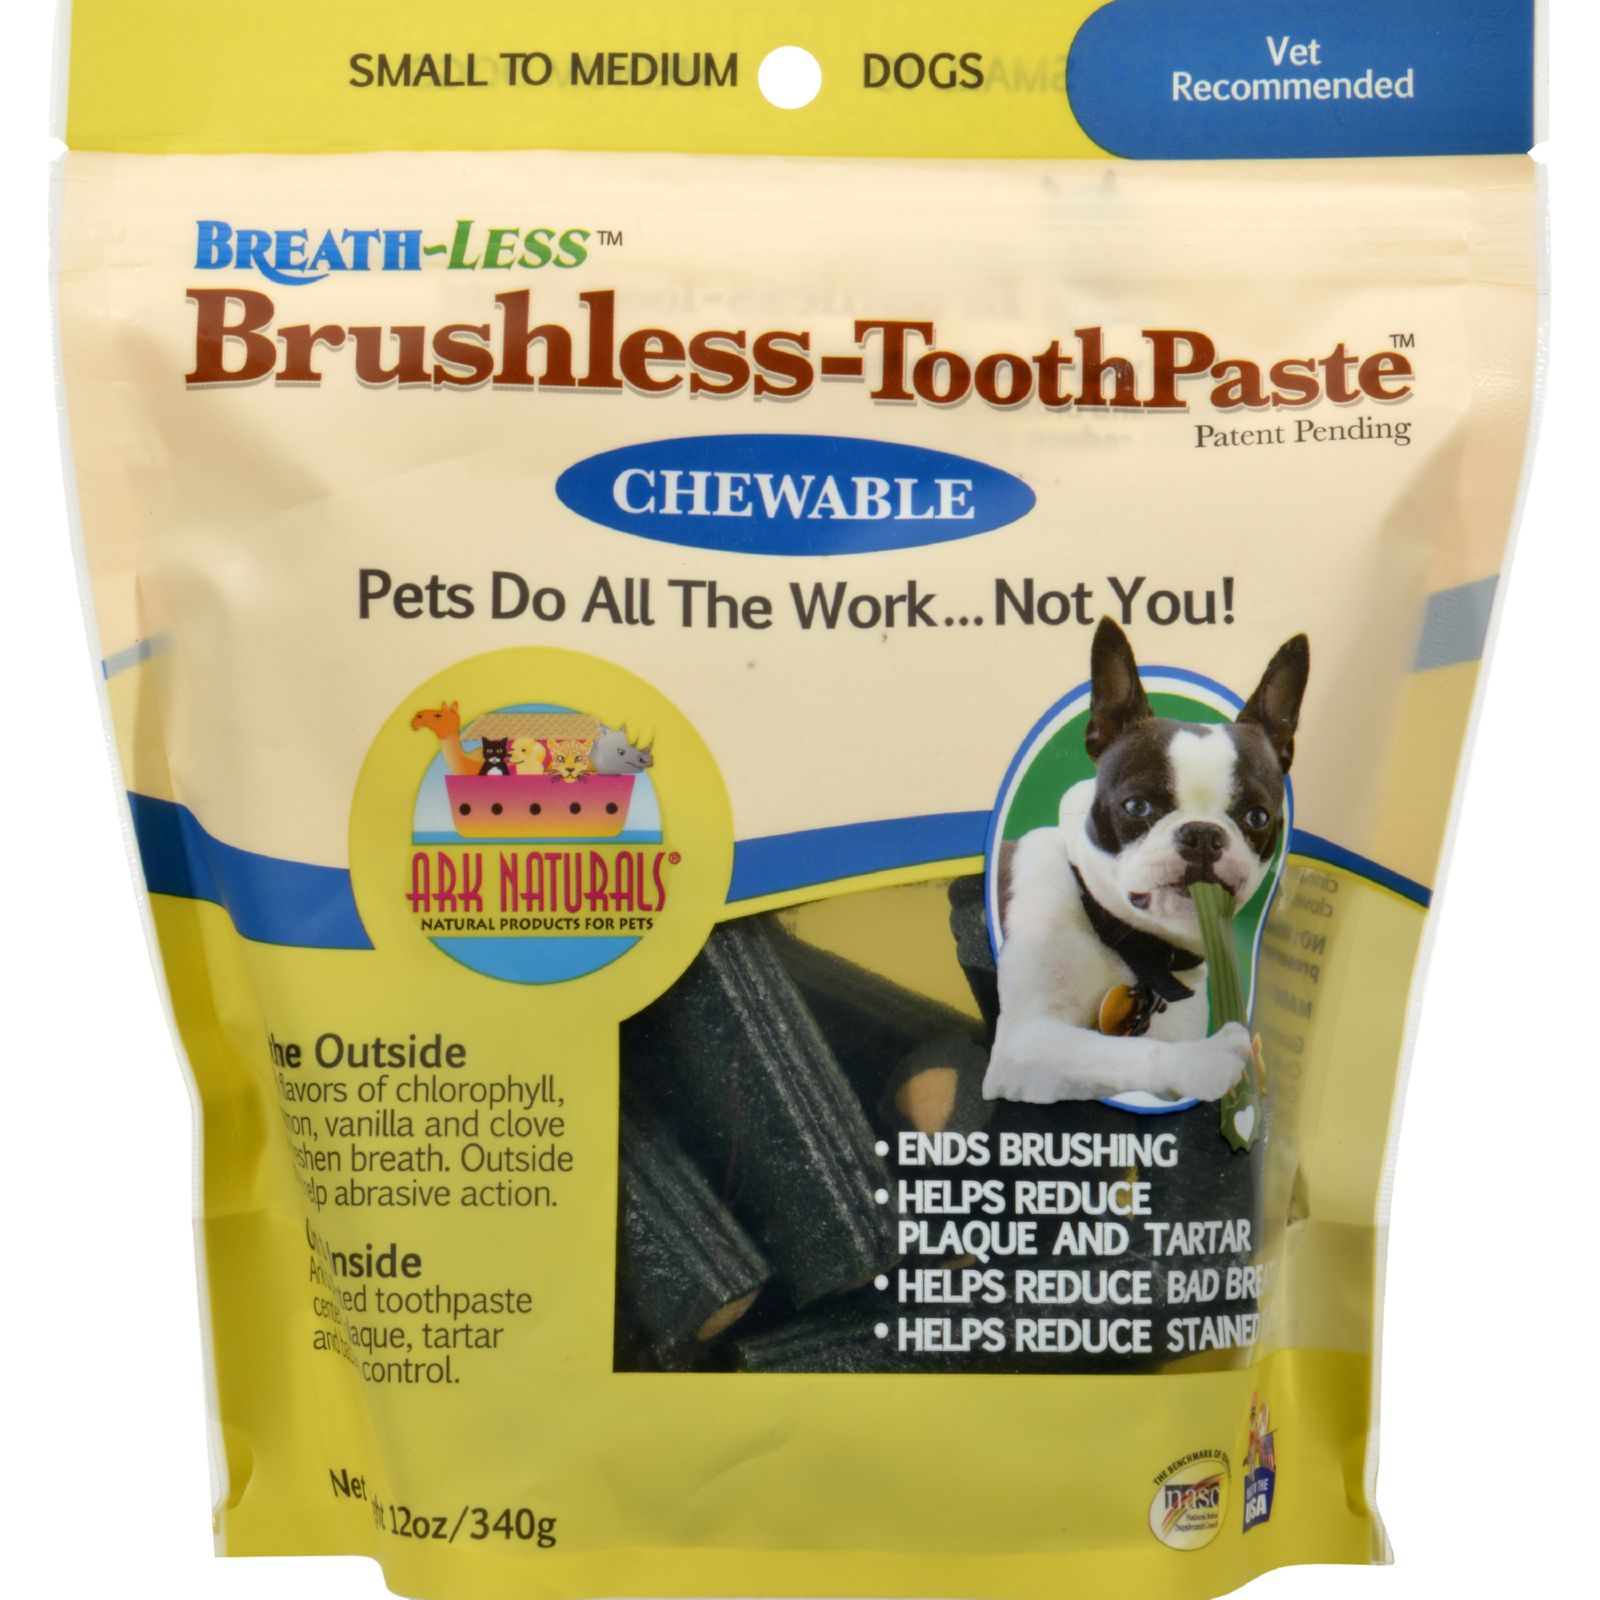 Ark Naturals Breath-Less Brushless Toothpaste for Small to Medium Dogs, 12 Oz